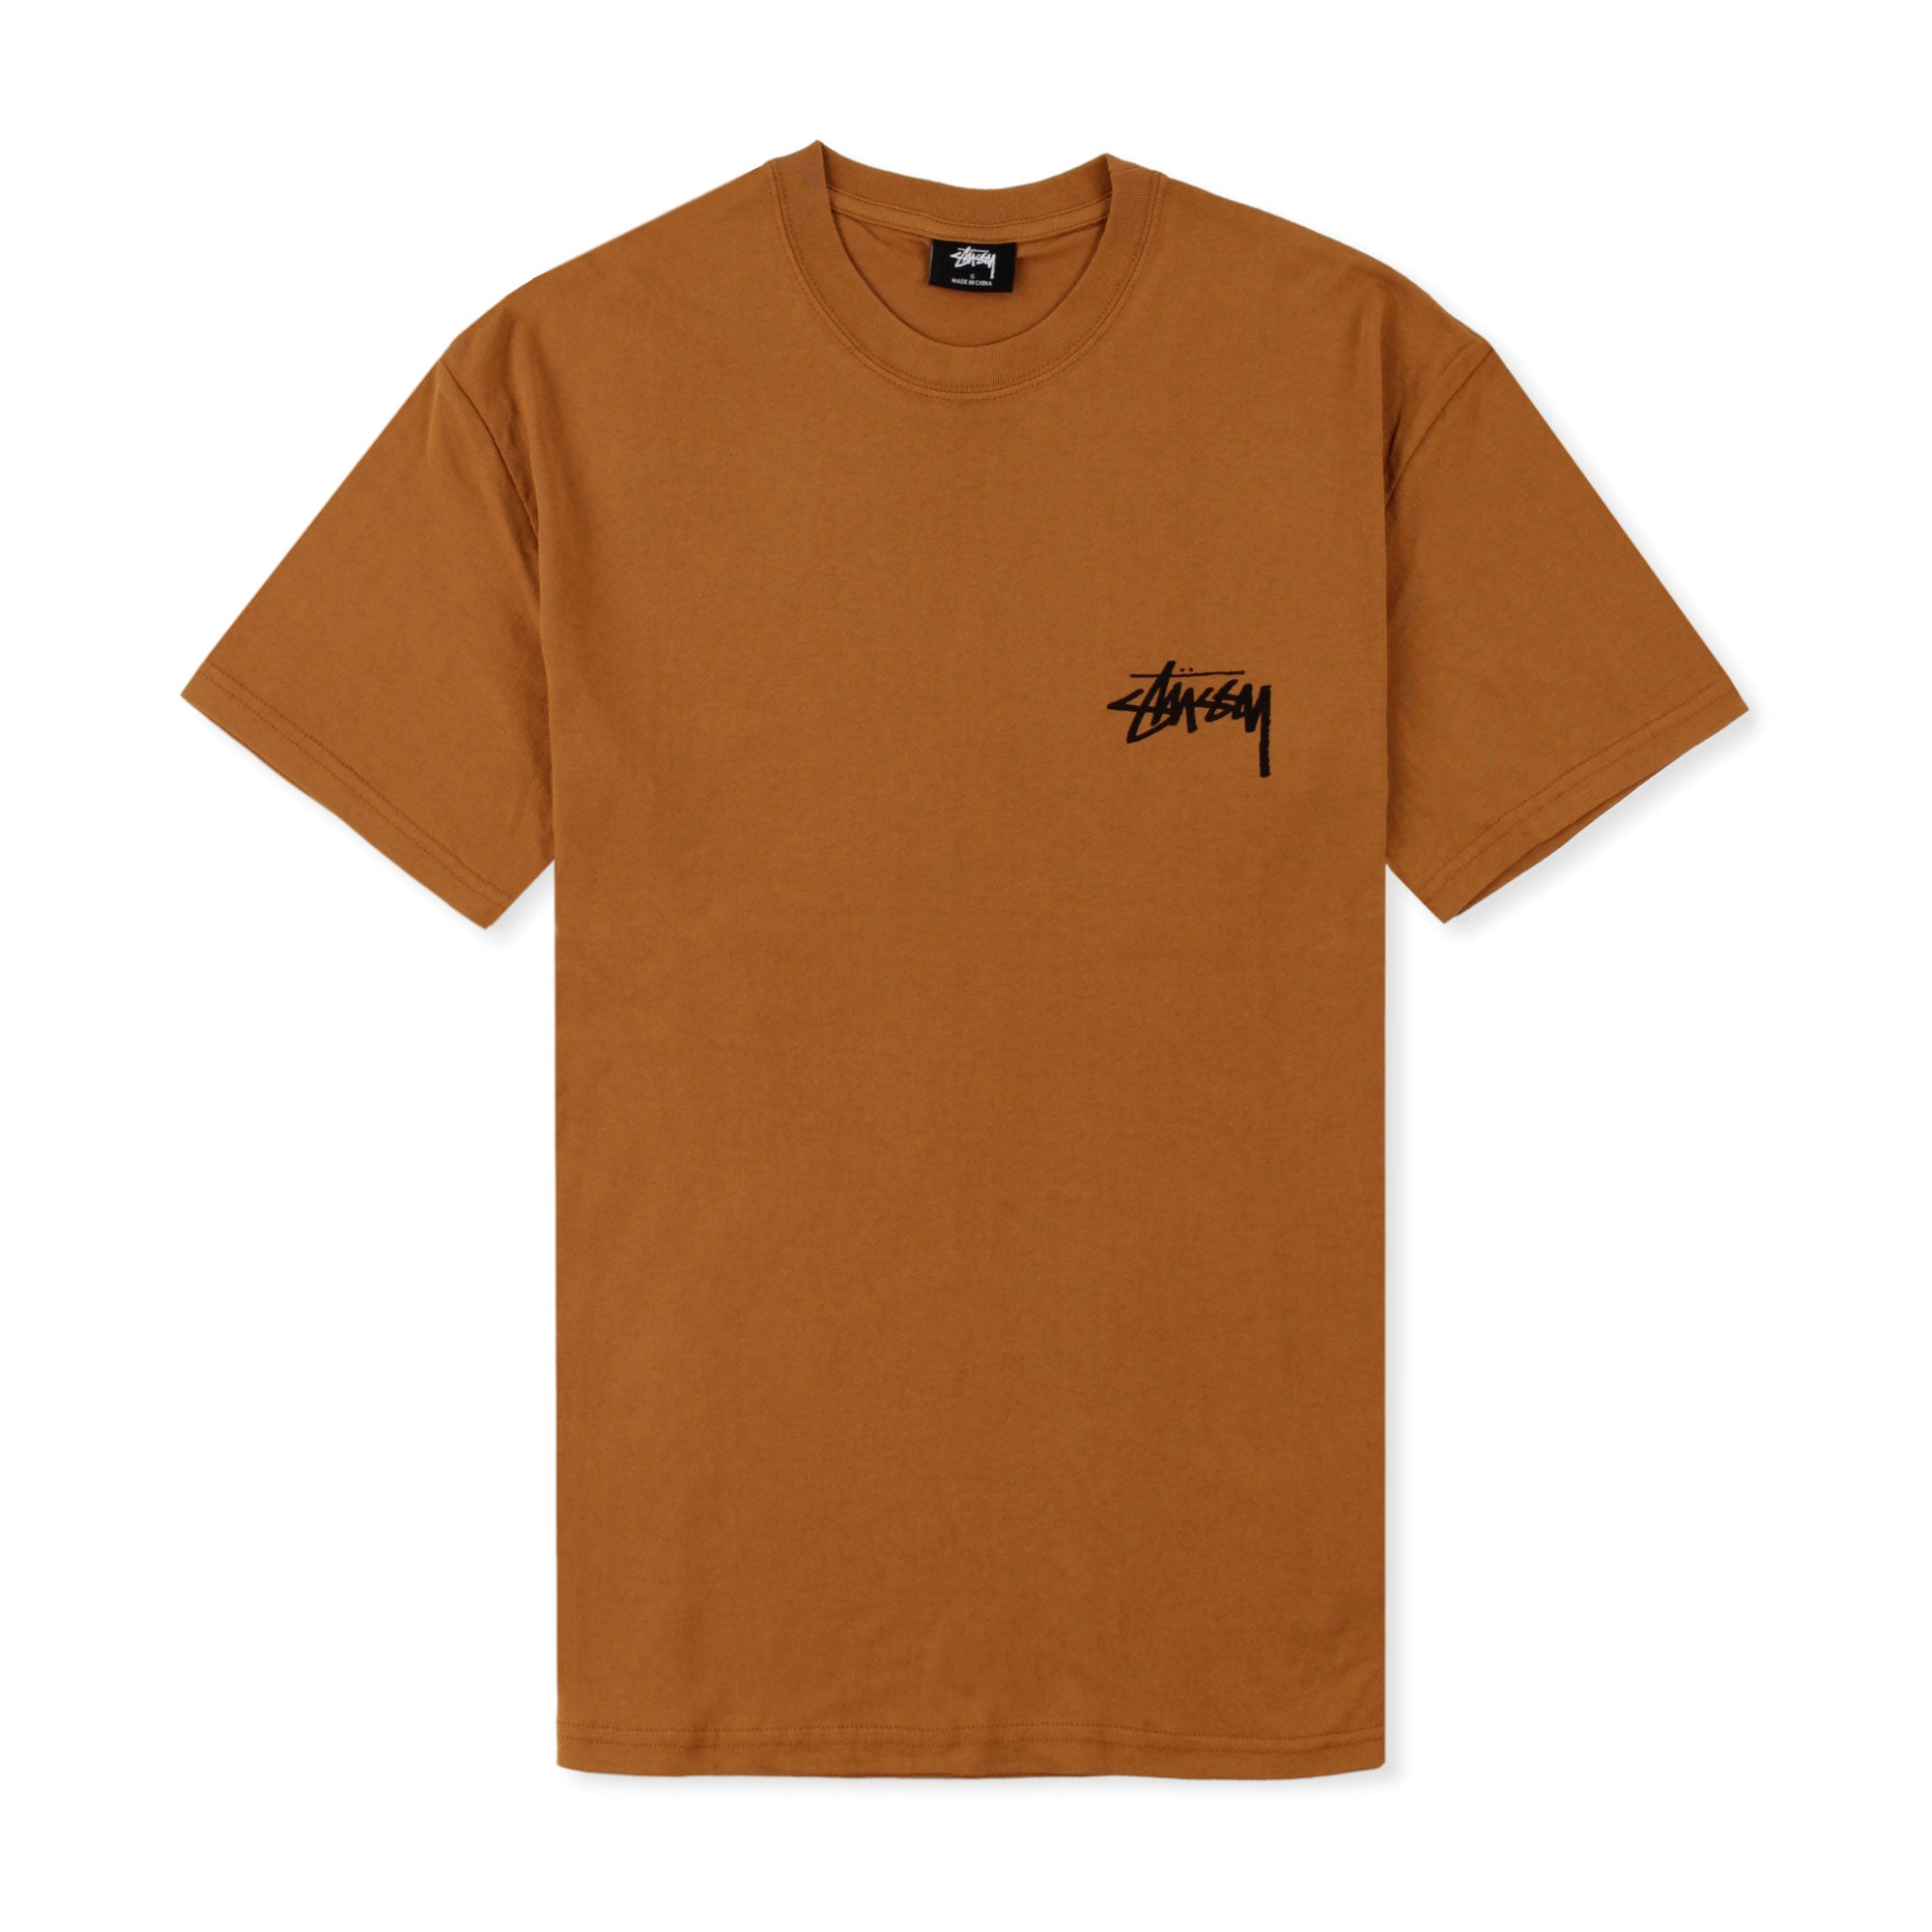 Stussy Enjoy Yourself Tee Product Photo #1